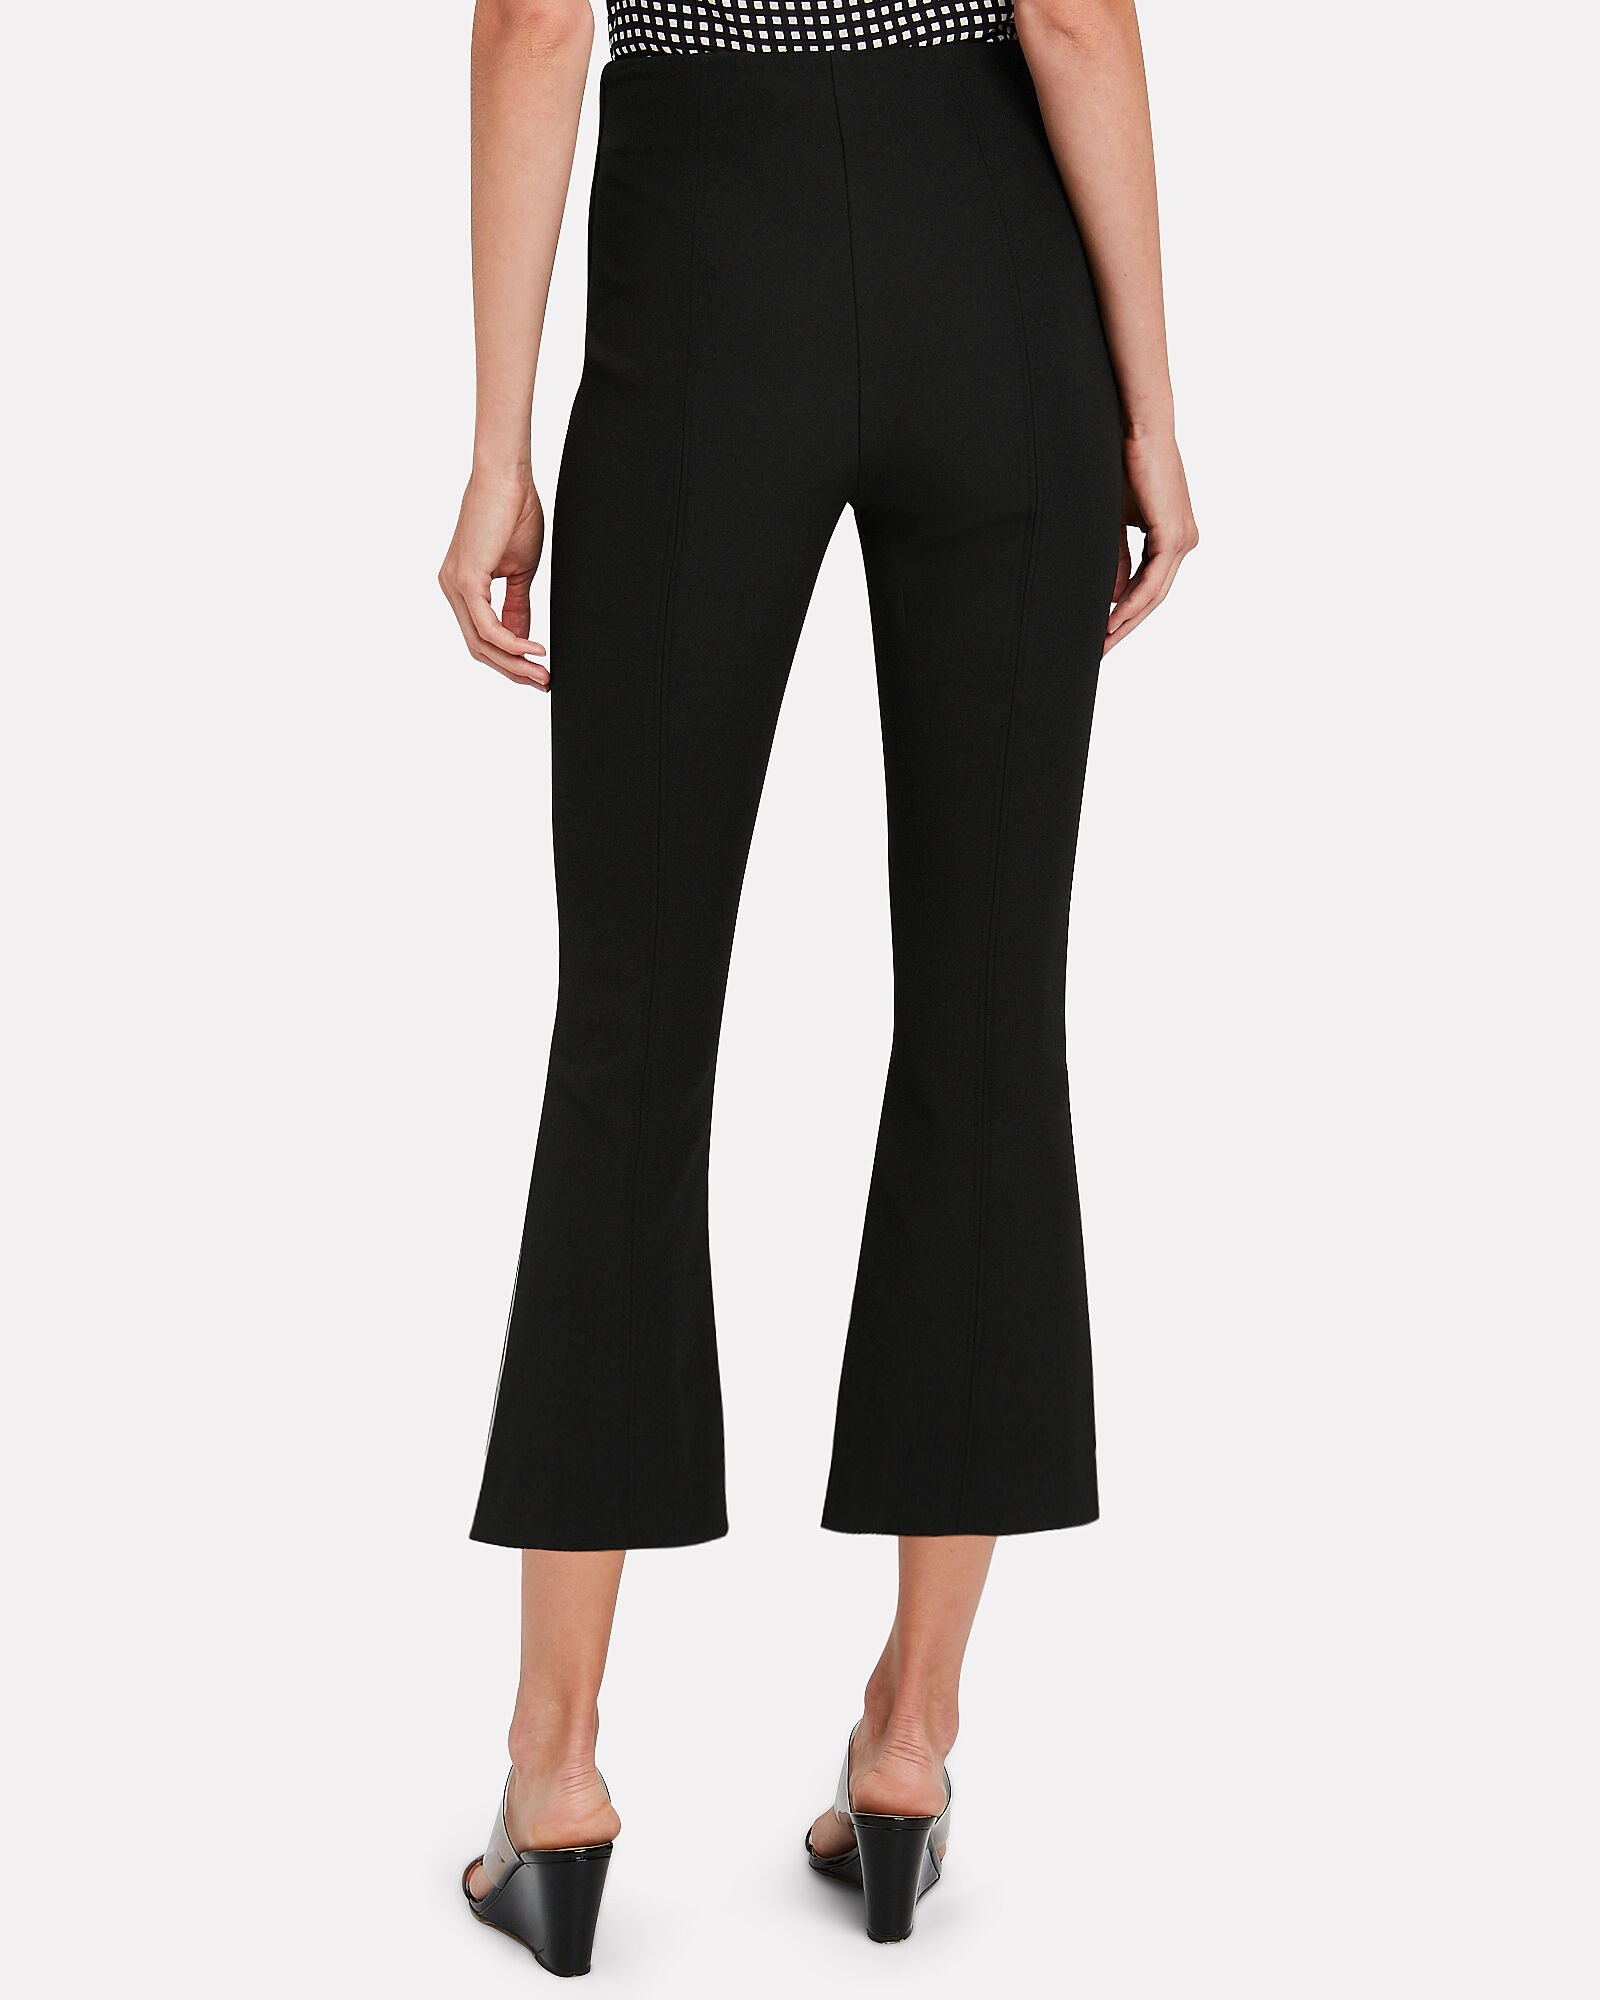 Drew High-Rise Cropped Trousers, BLACK, hi-res